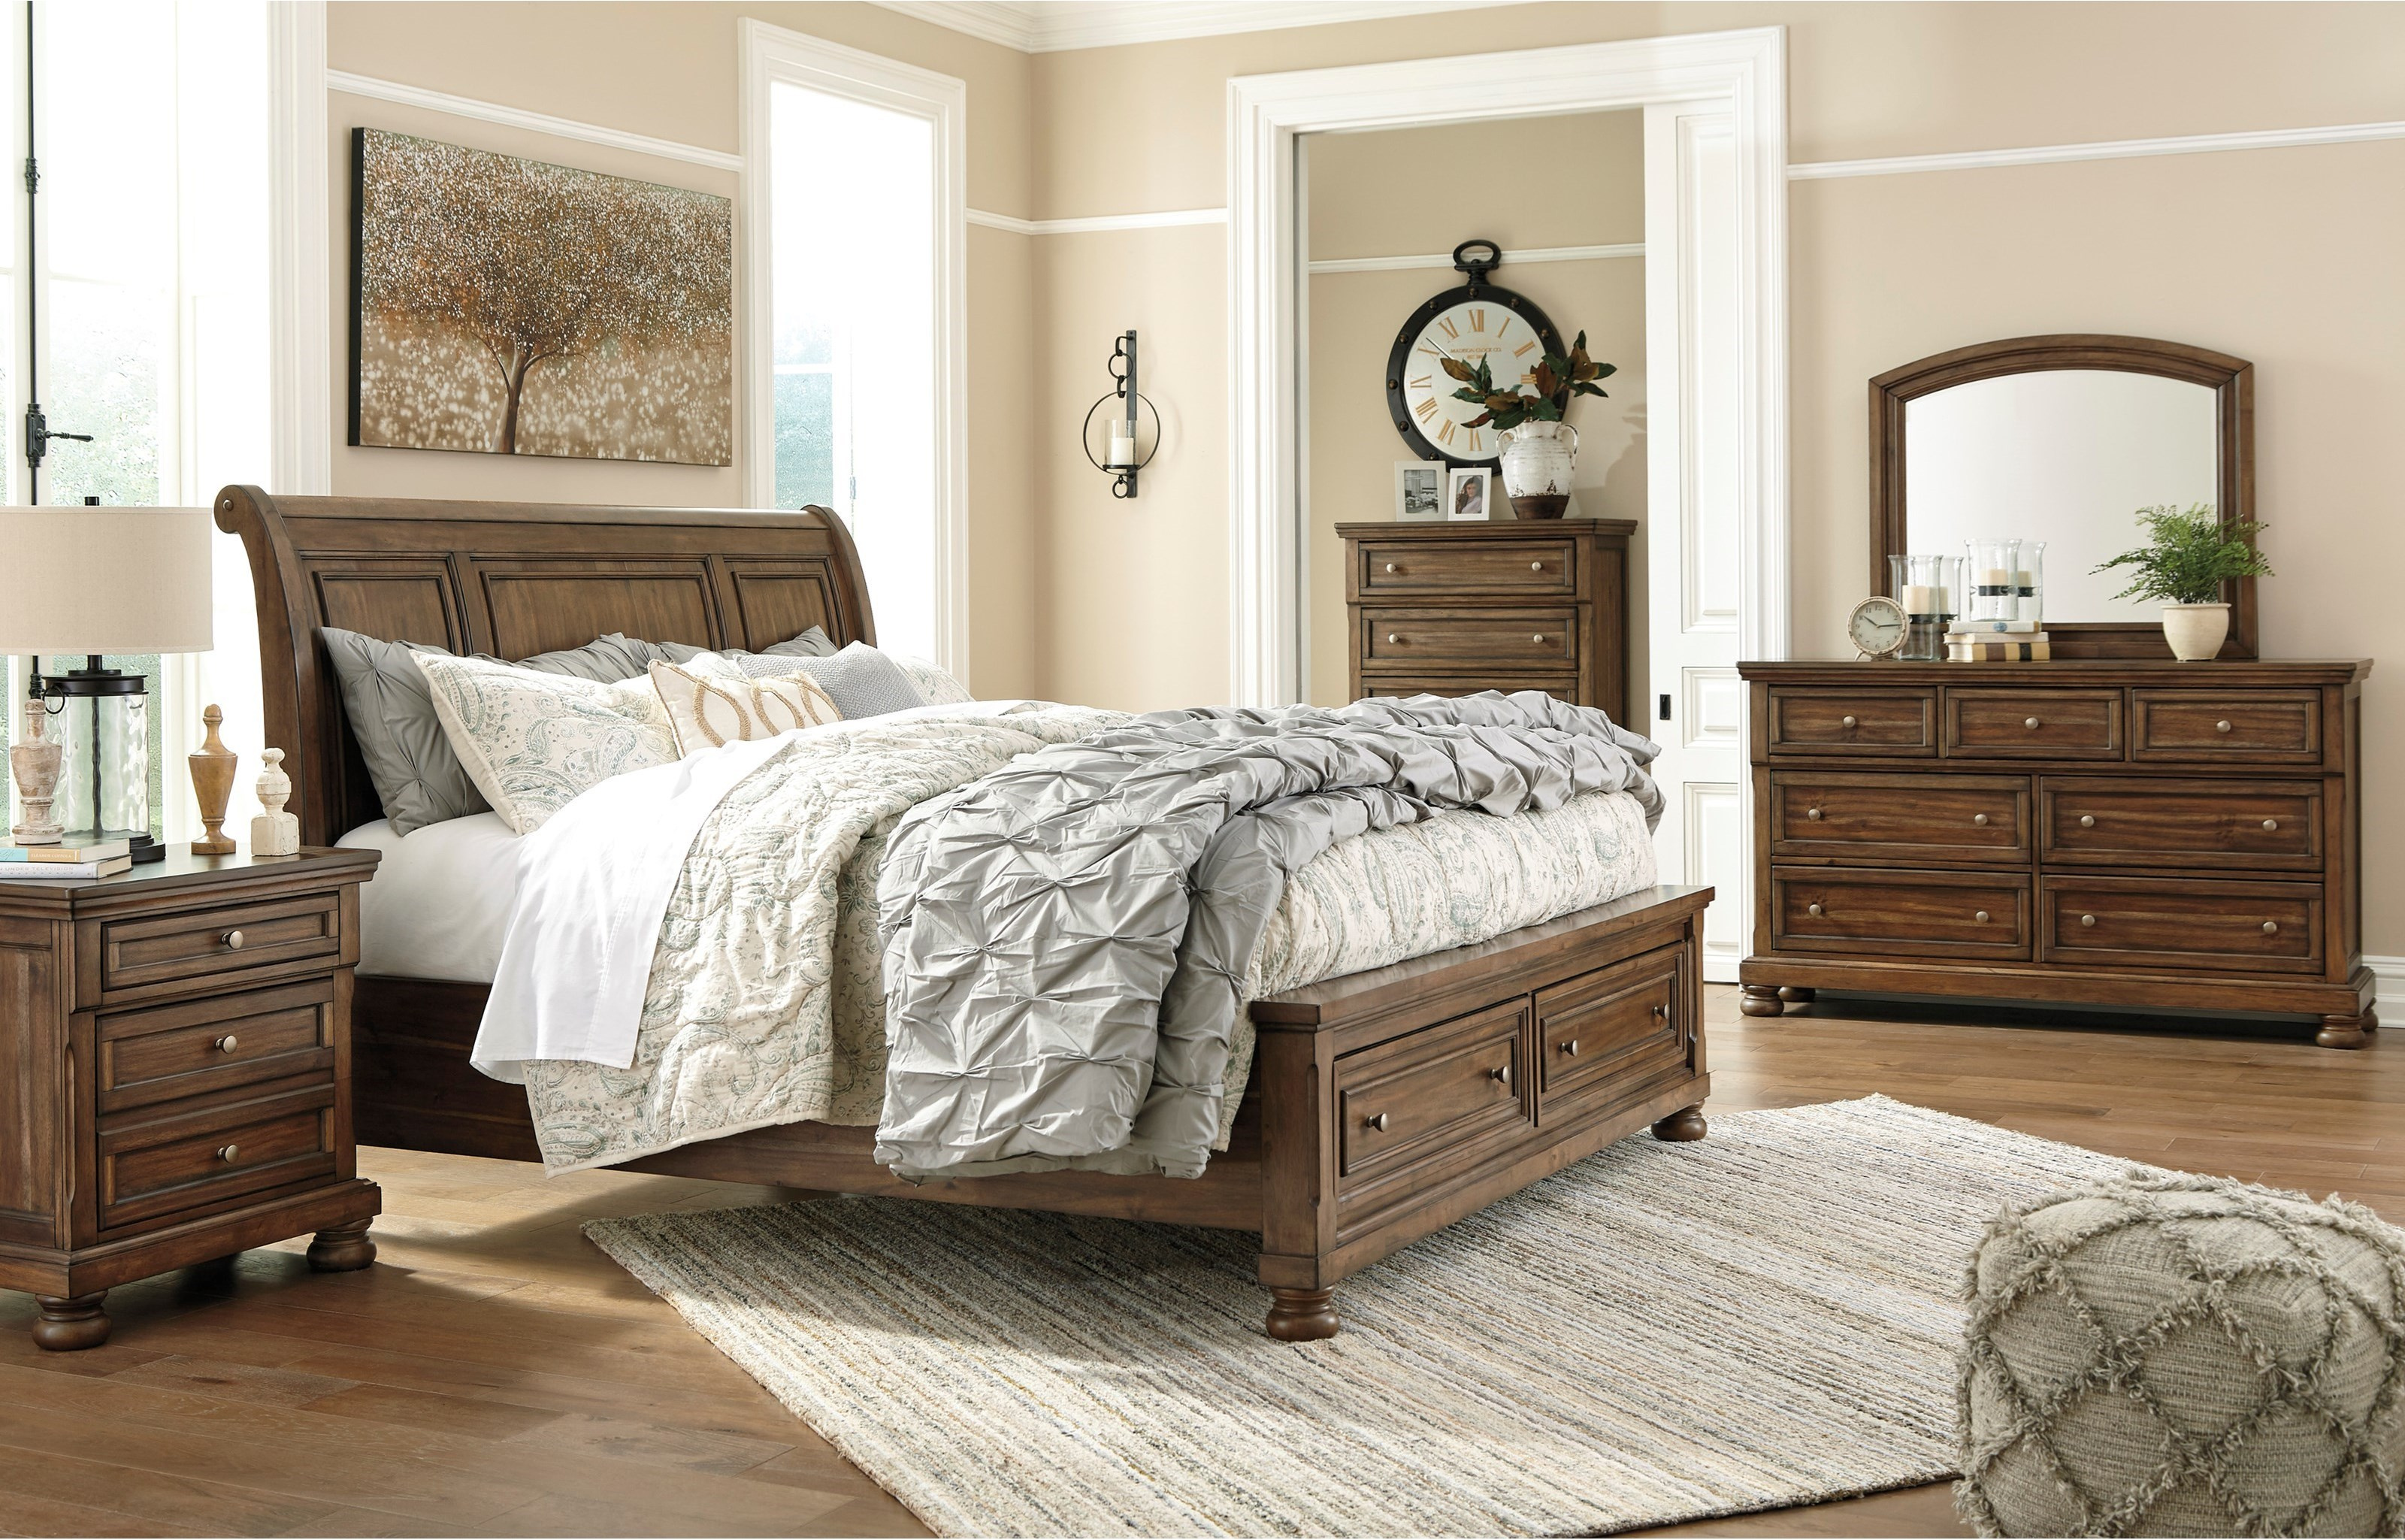 B719BR Bedroom Set